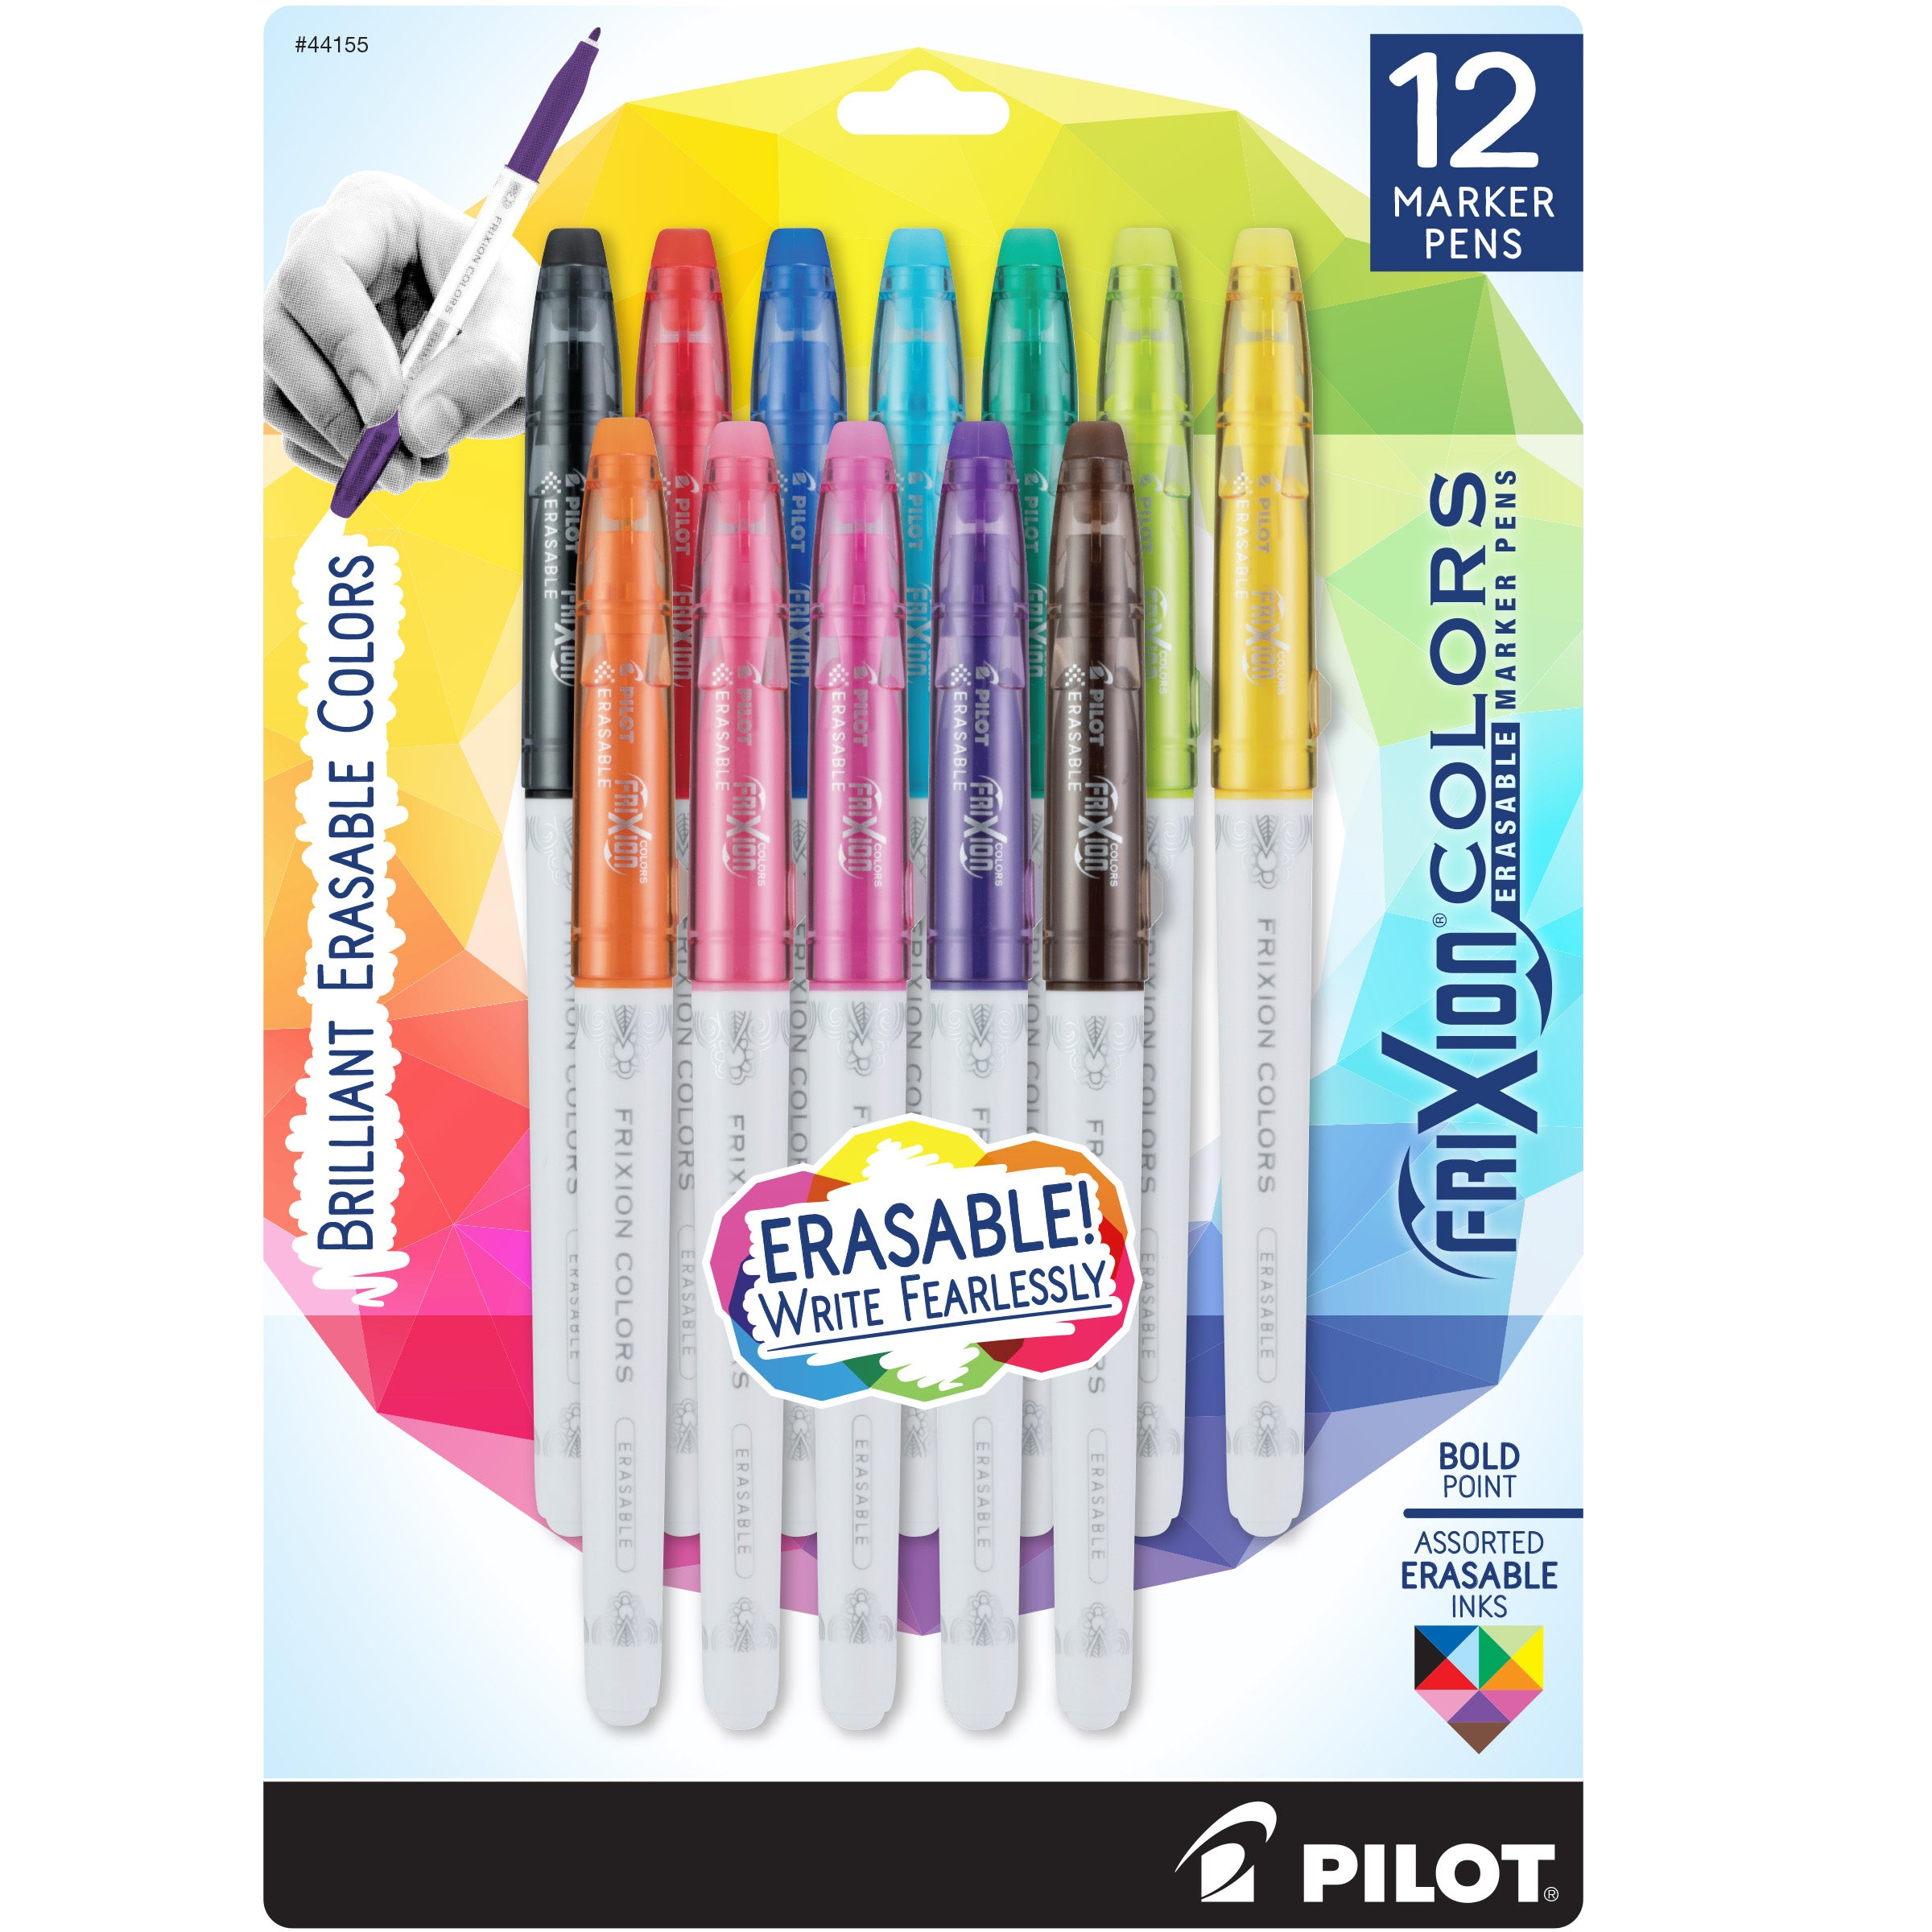 Pilot 44155 FriXion Erasable Color Marker Pens, Bold Point, 12-Pack, Assorted Colors